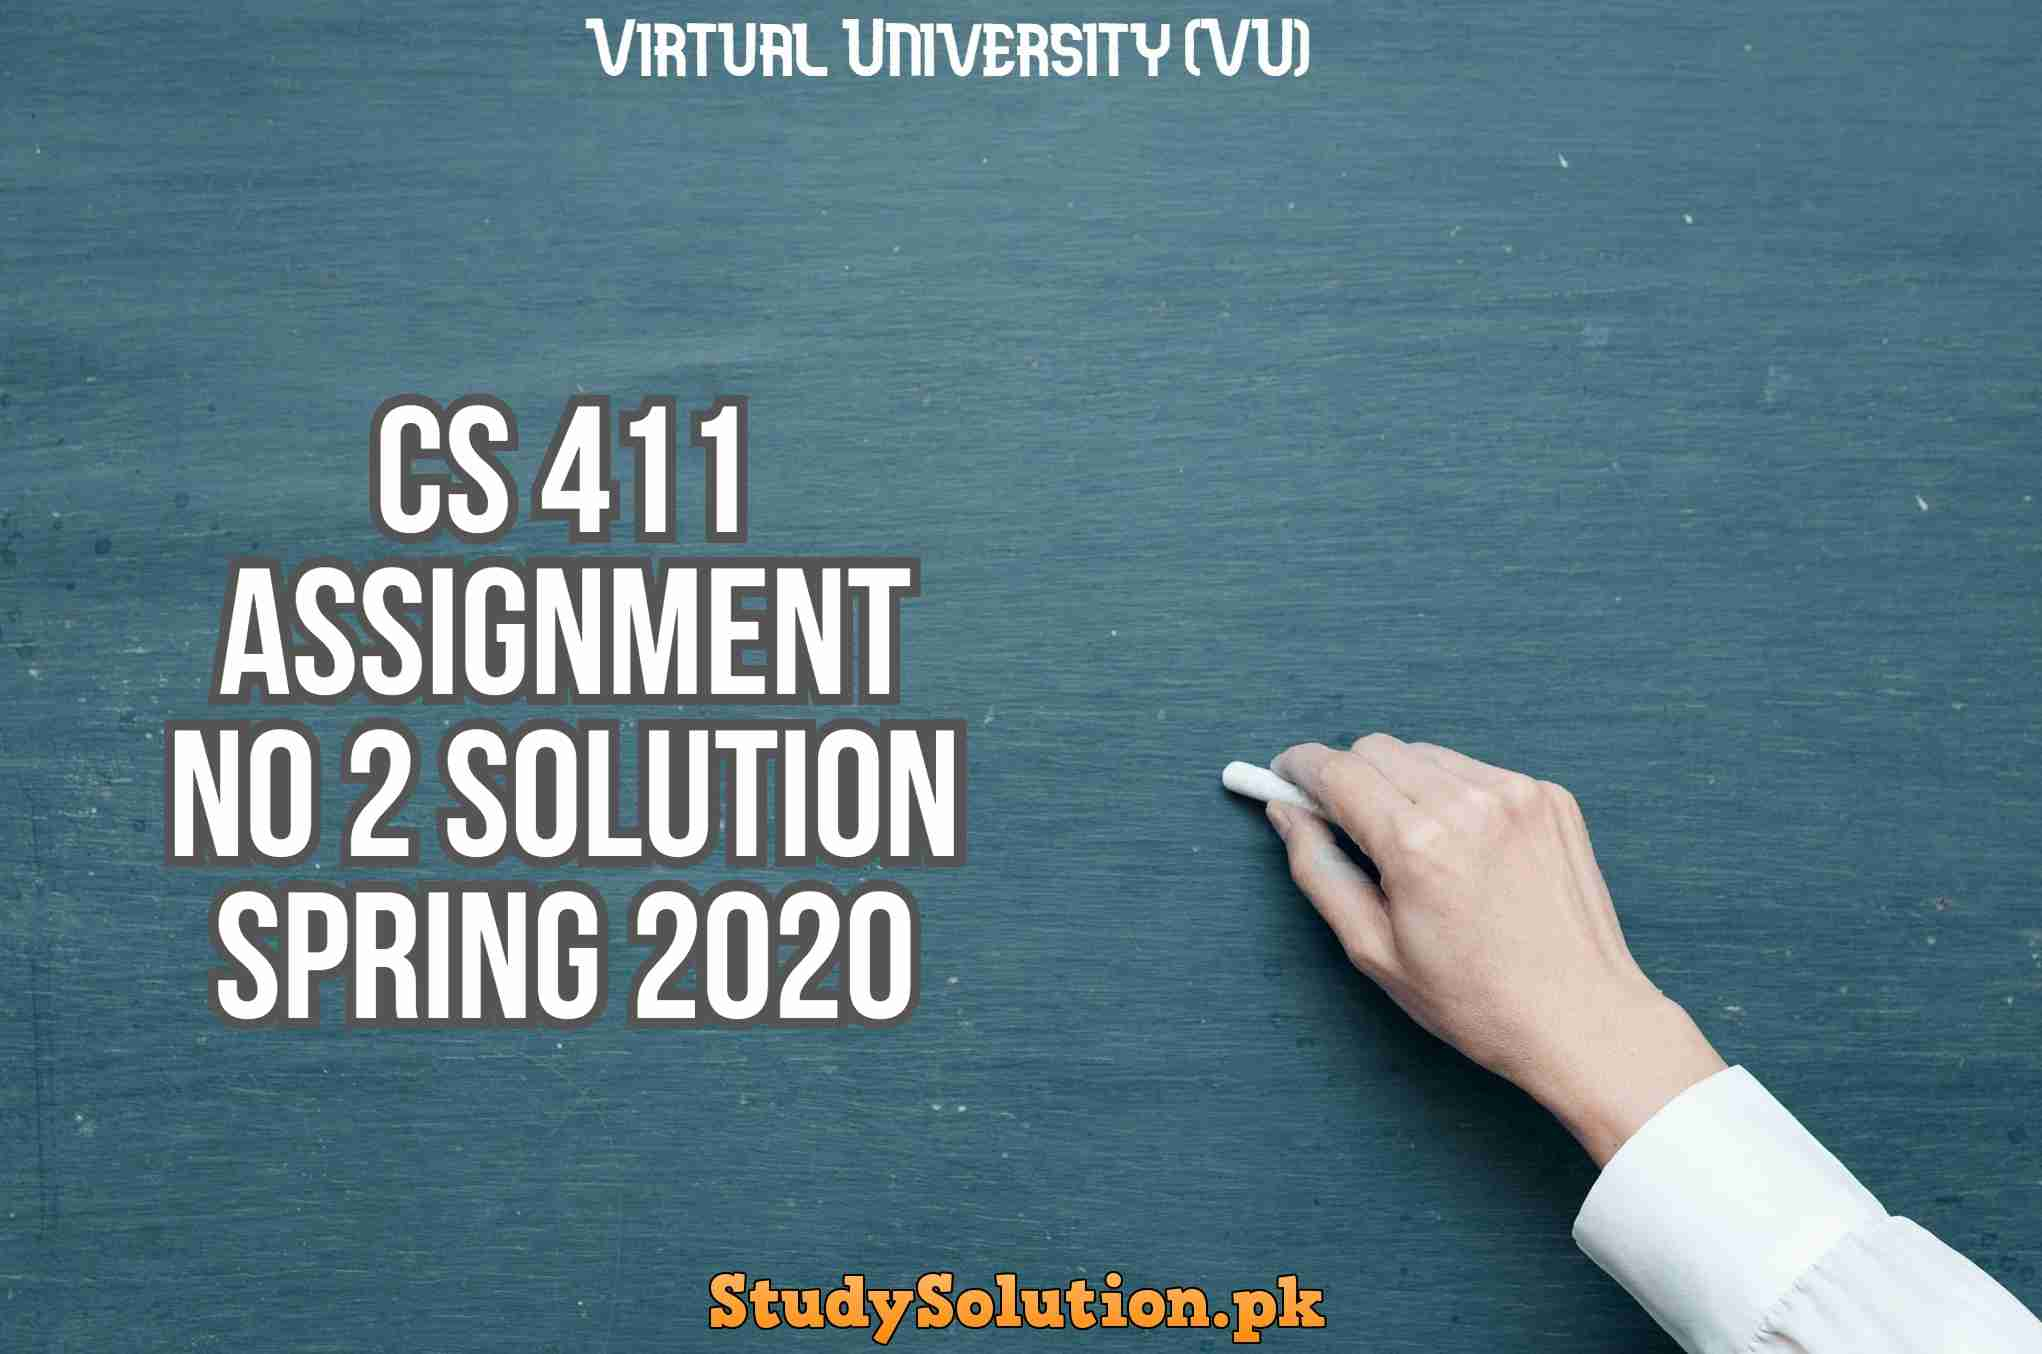 CS 411 Assignment No 2 Solution Spring 2020